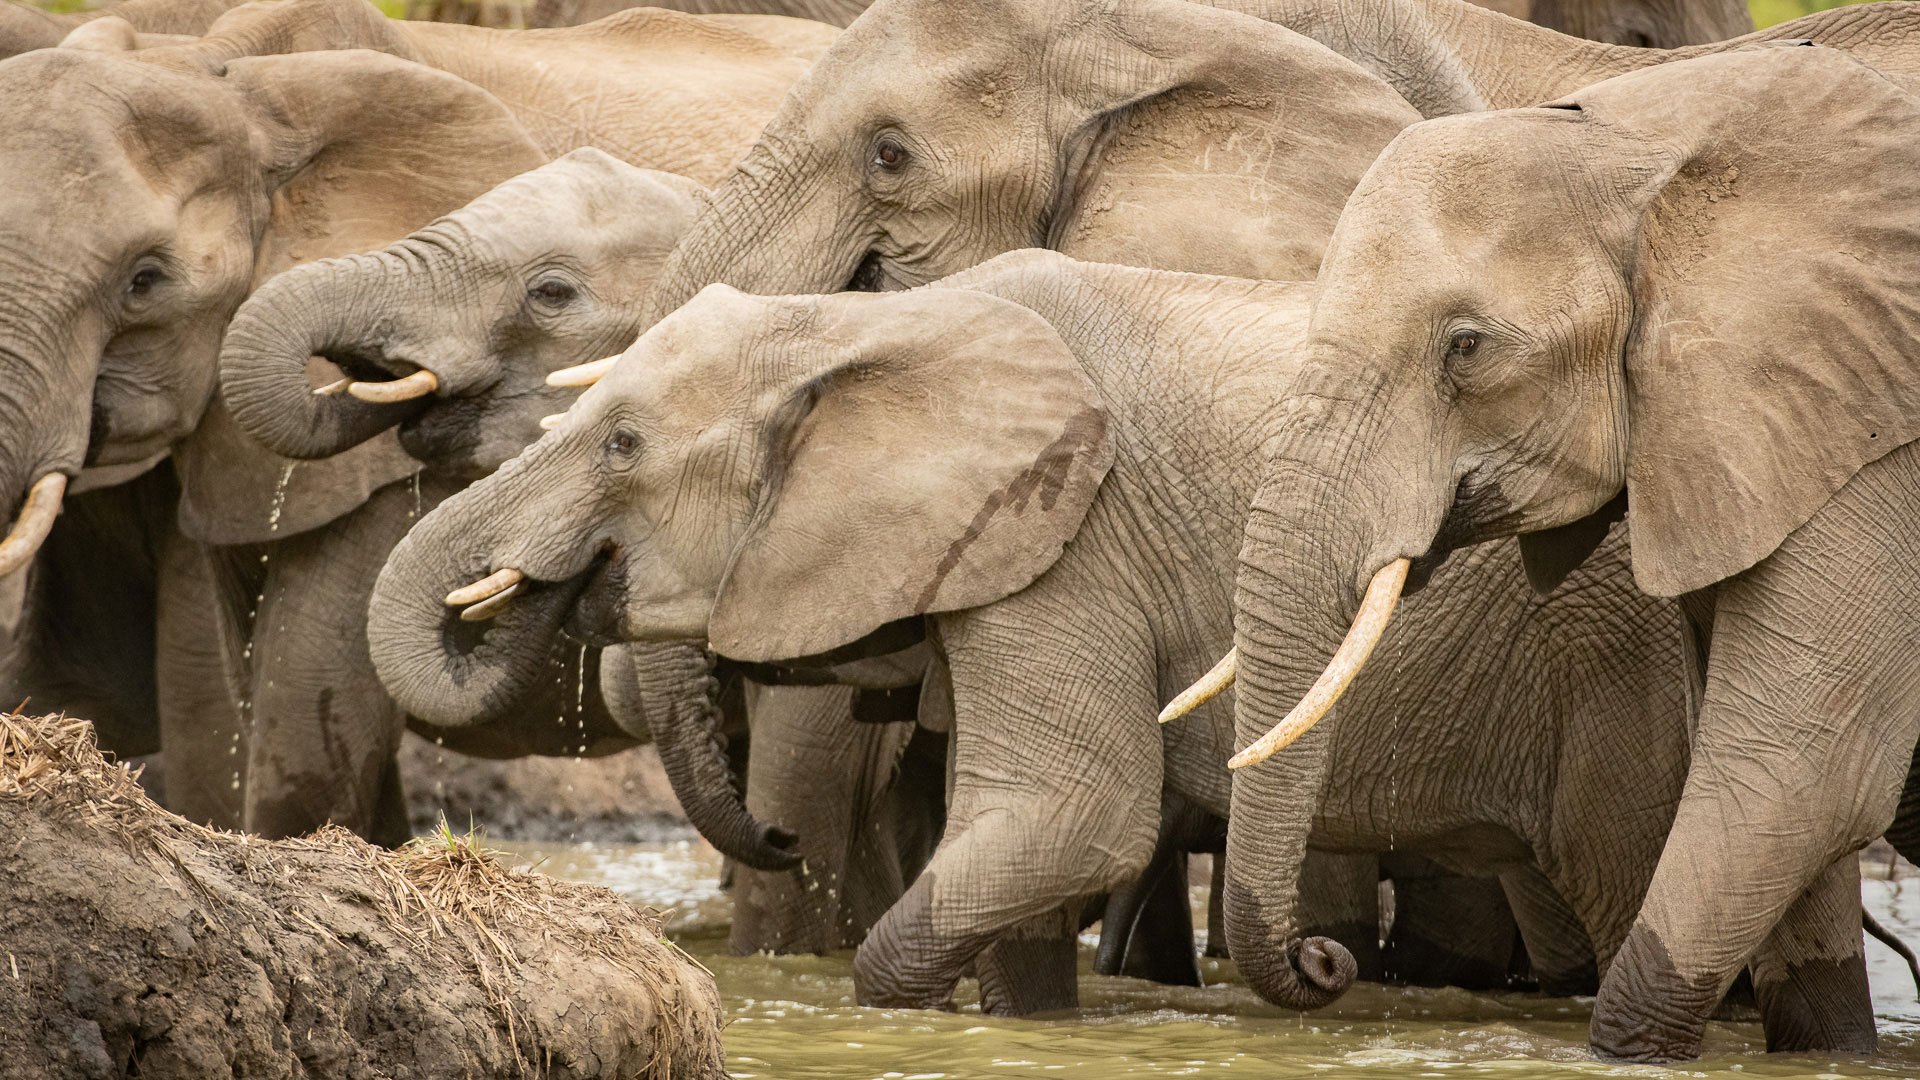 Tanda Tula - elephants in the mud in the Greater Kruger, South Africa